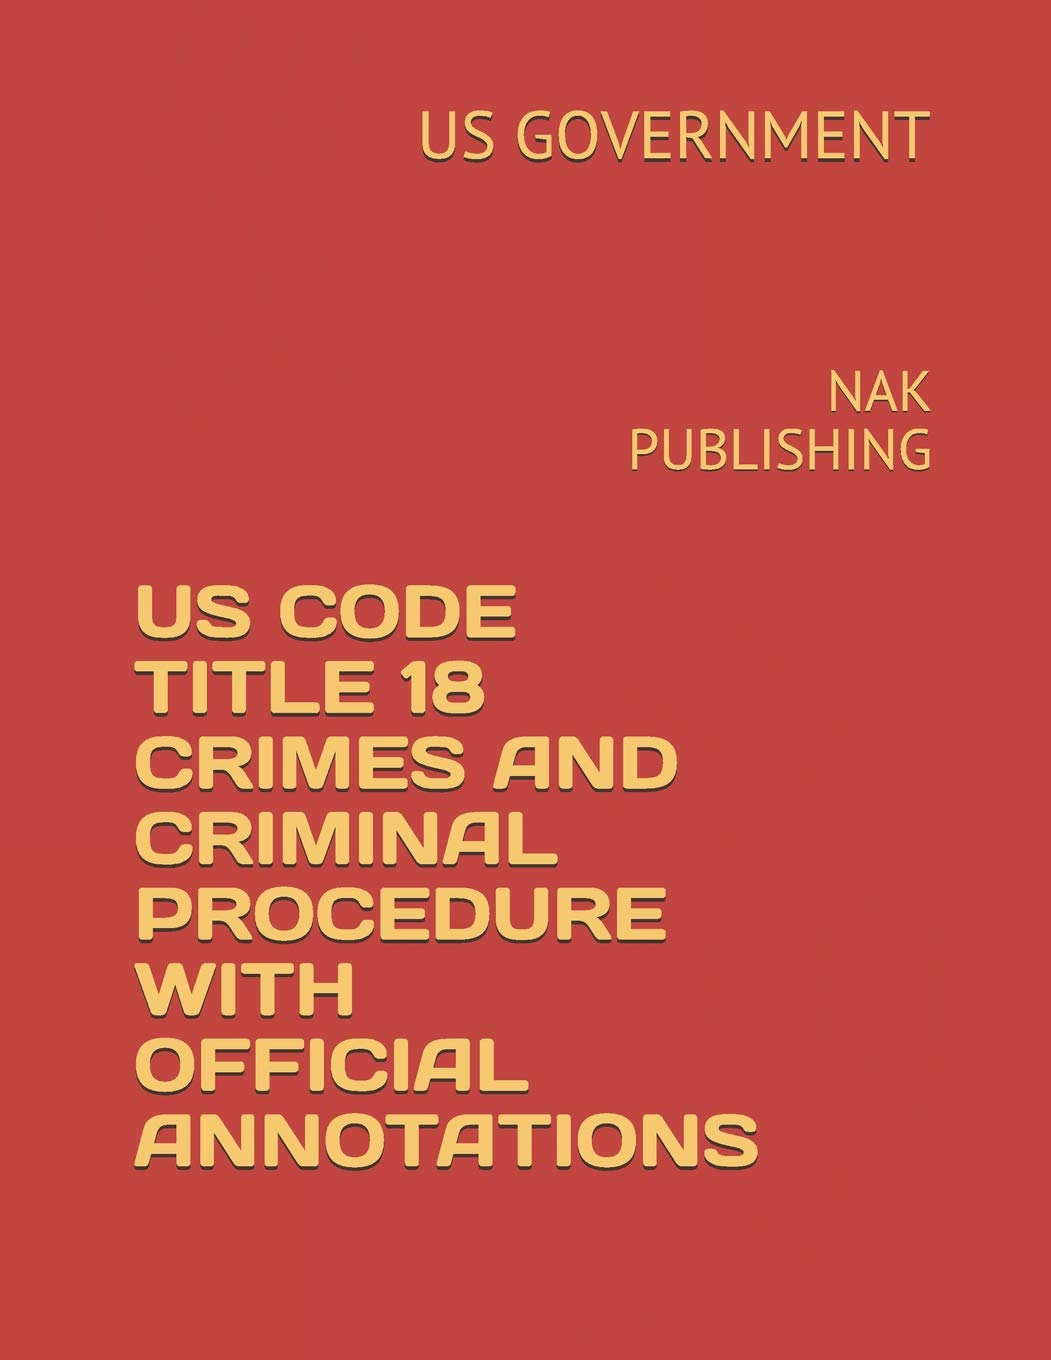 US CODE 2018-2019 TITLE 18 CRIMES AND PUNISHMENTS WITH OFFICIAL ANNOTATIONS: NAK PUBLISHING